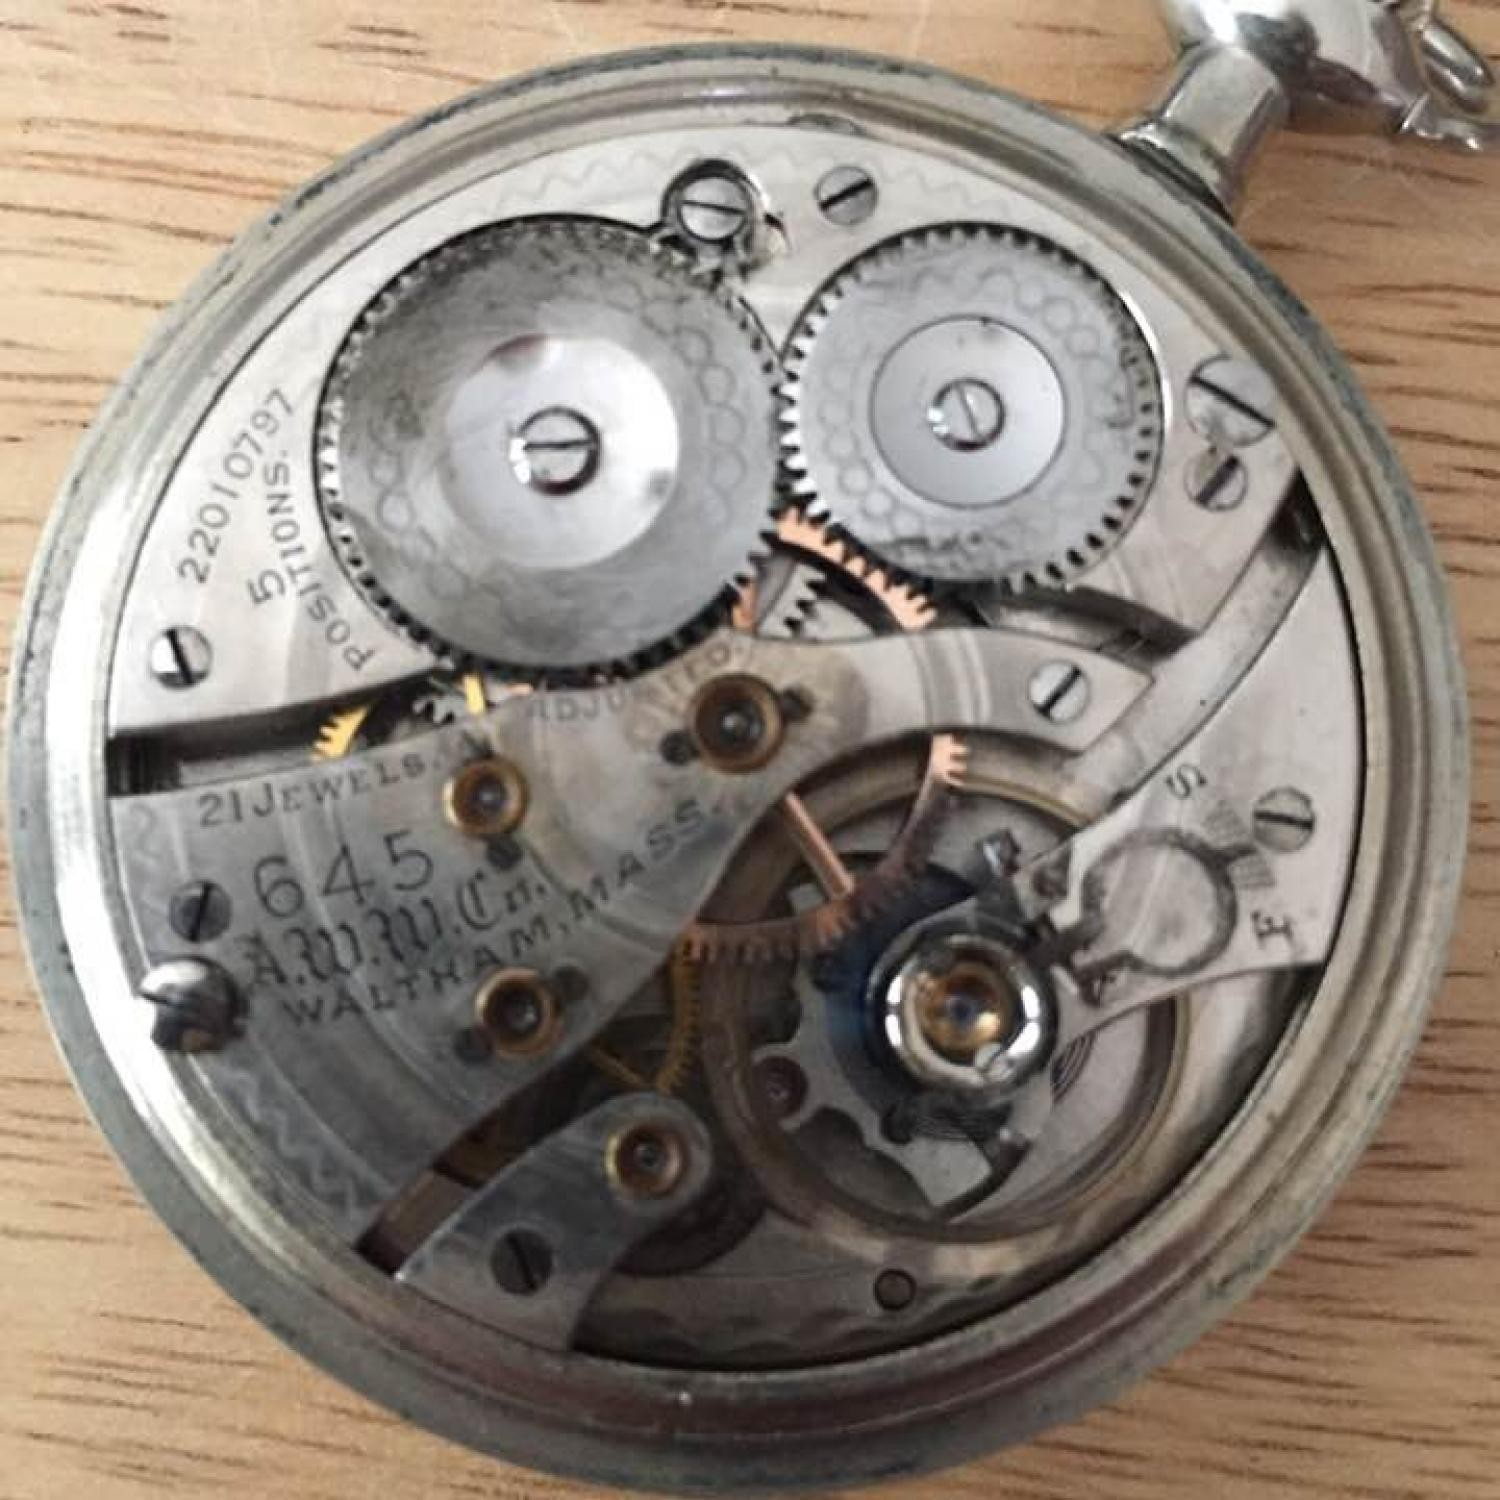 Image of Waltham No. 645 #22010797 Movement